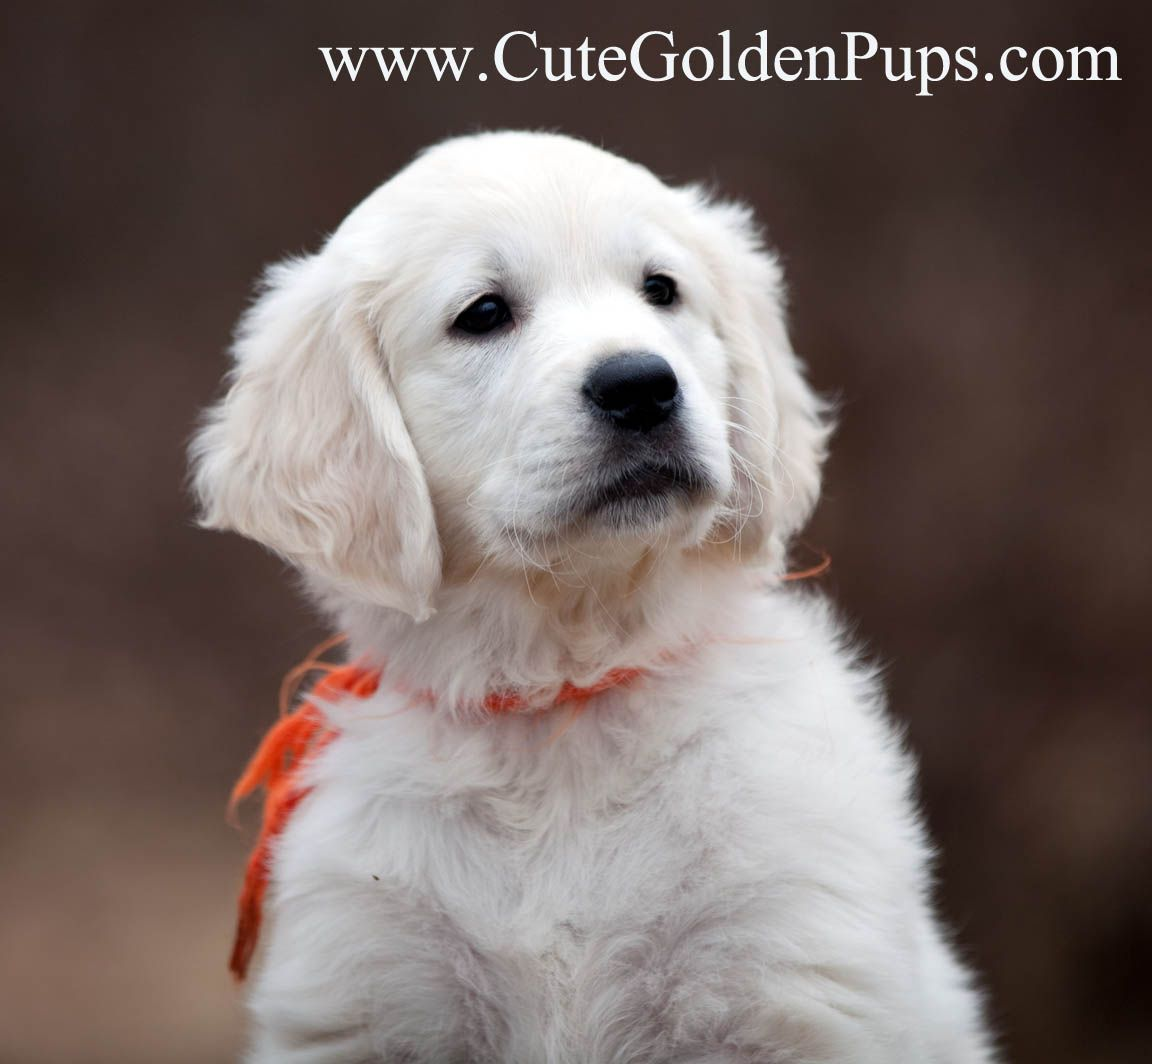 English Cream Golden Retrievers Nj Ca Tx Fl Ct Ma Ri Pa Az